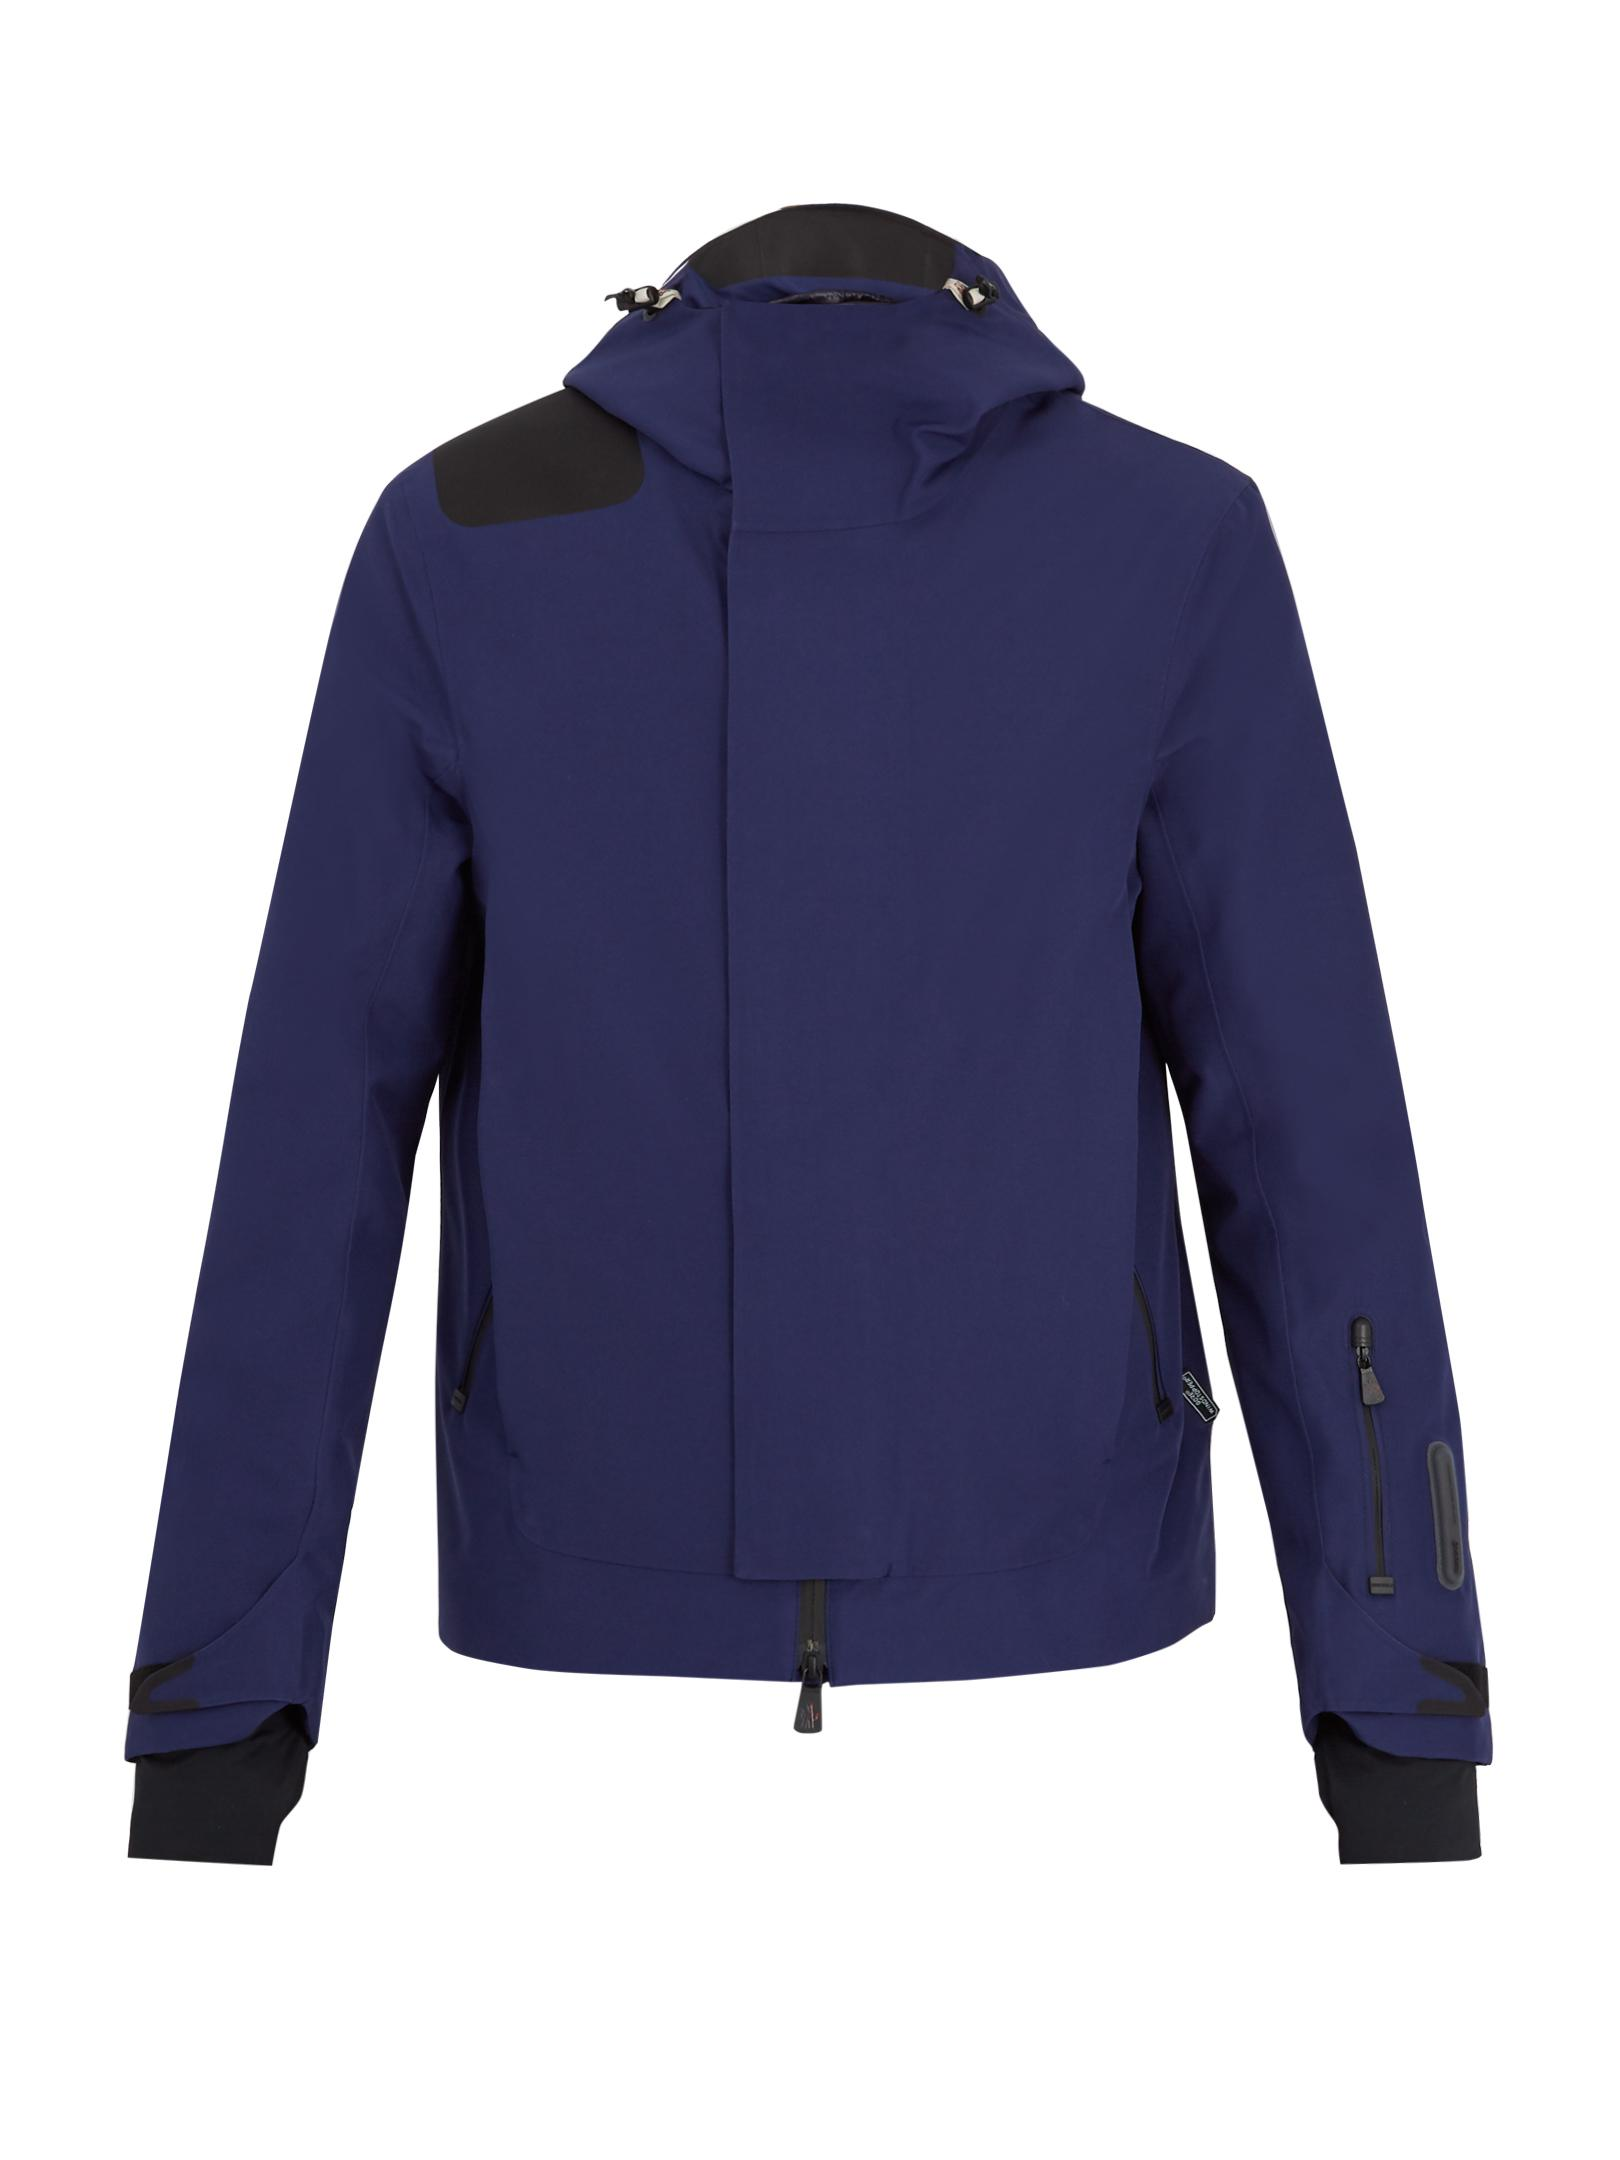 c7a65bdf7 Moncler Grenoble Megeve Recco Hooded Jacket | LookMazing